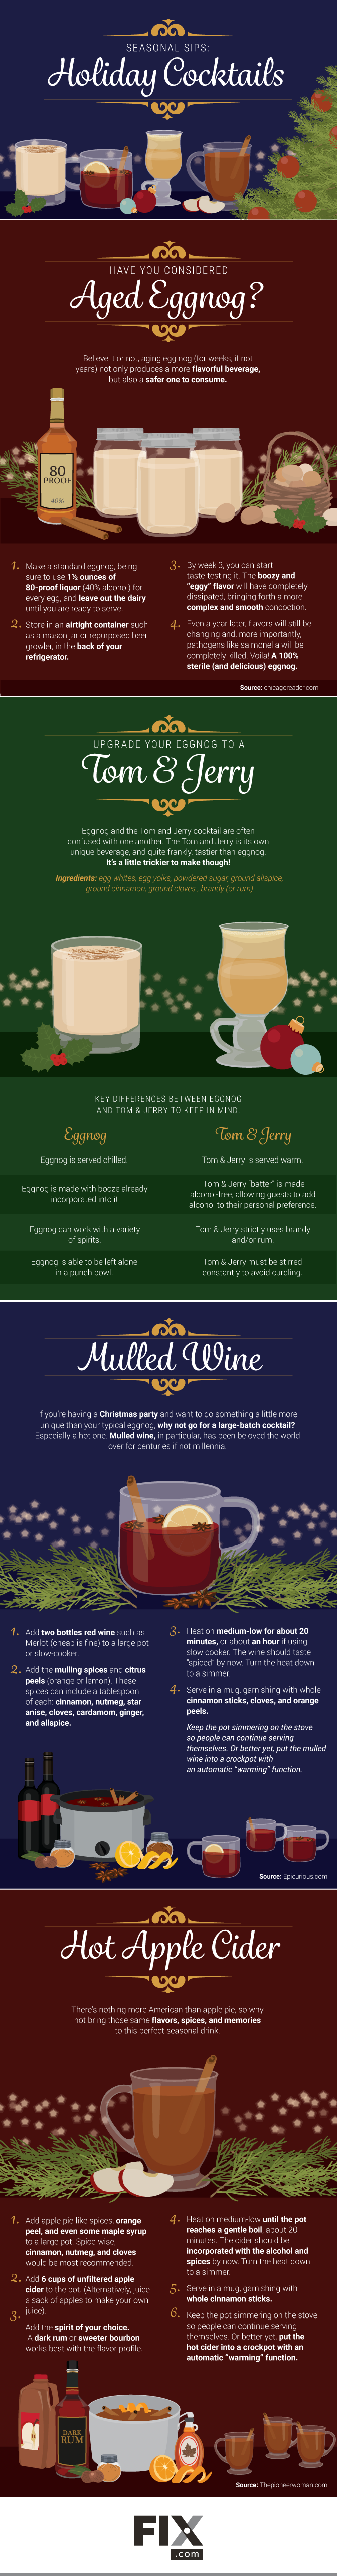 Festive Cocktails for the Holidays #infographic